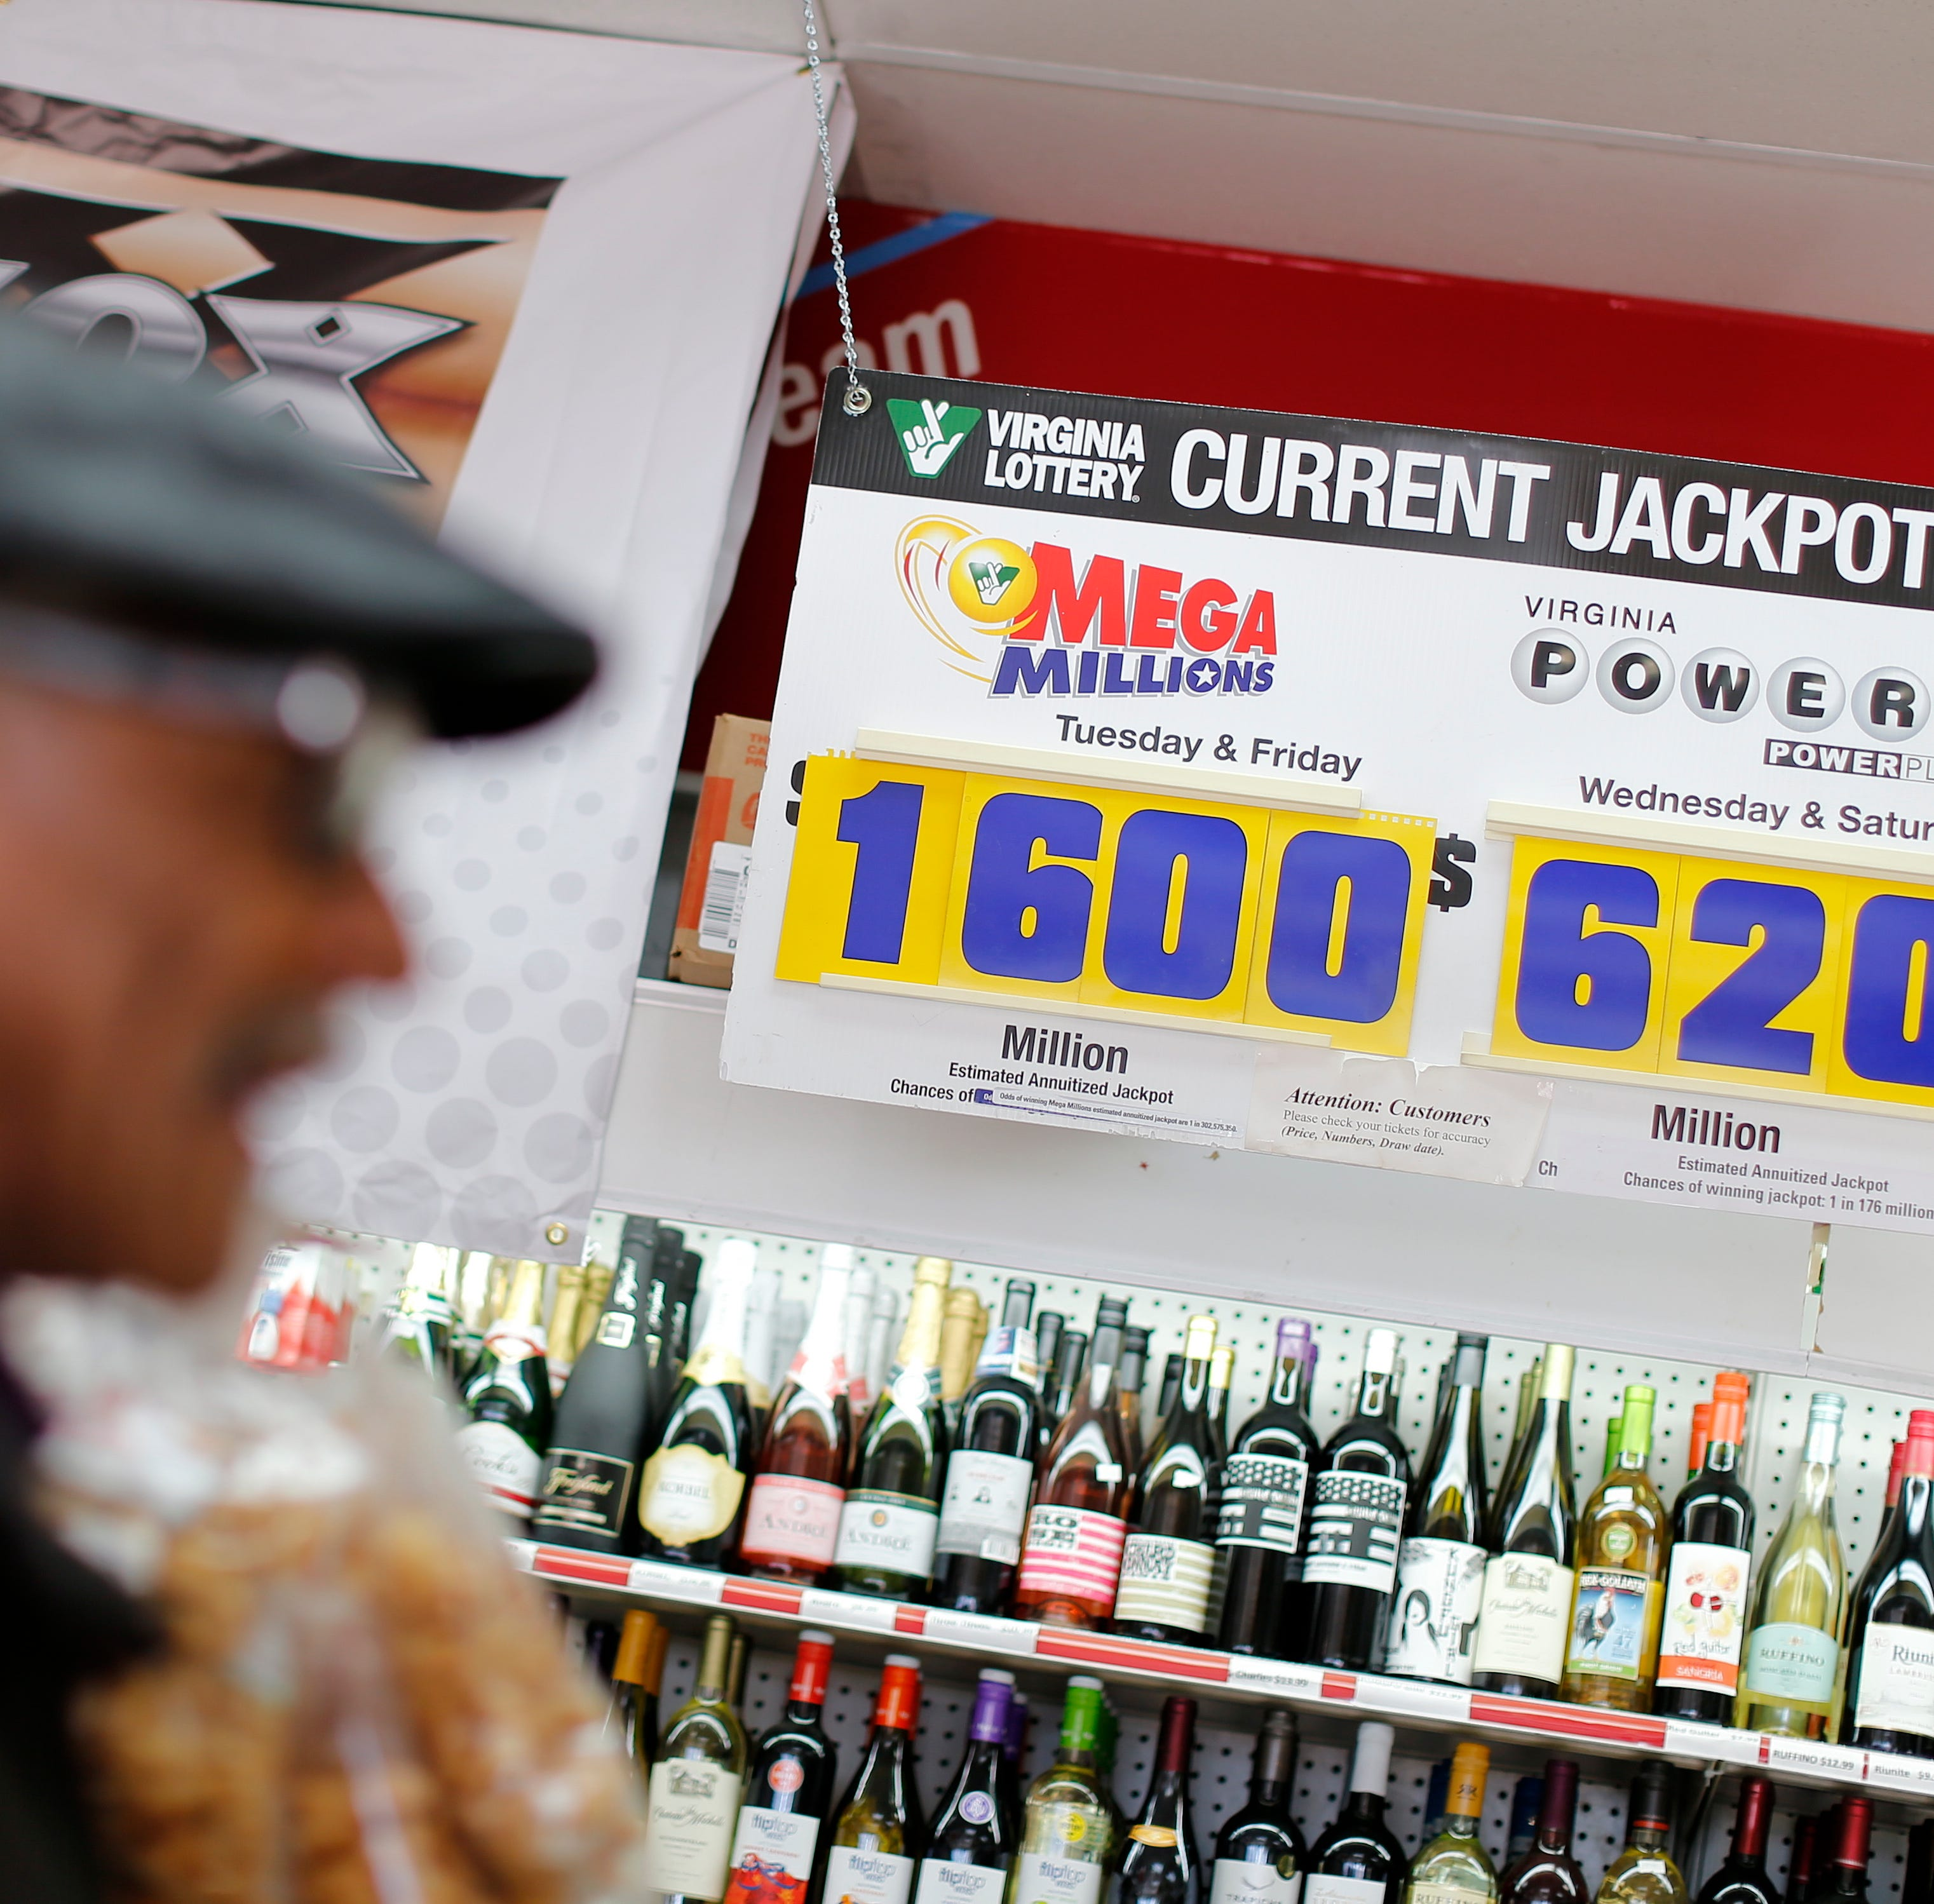 Picking your own lottery numbers? These are the most common Mega Millions, Powerball draws